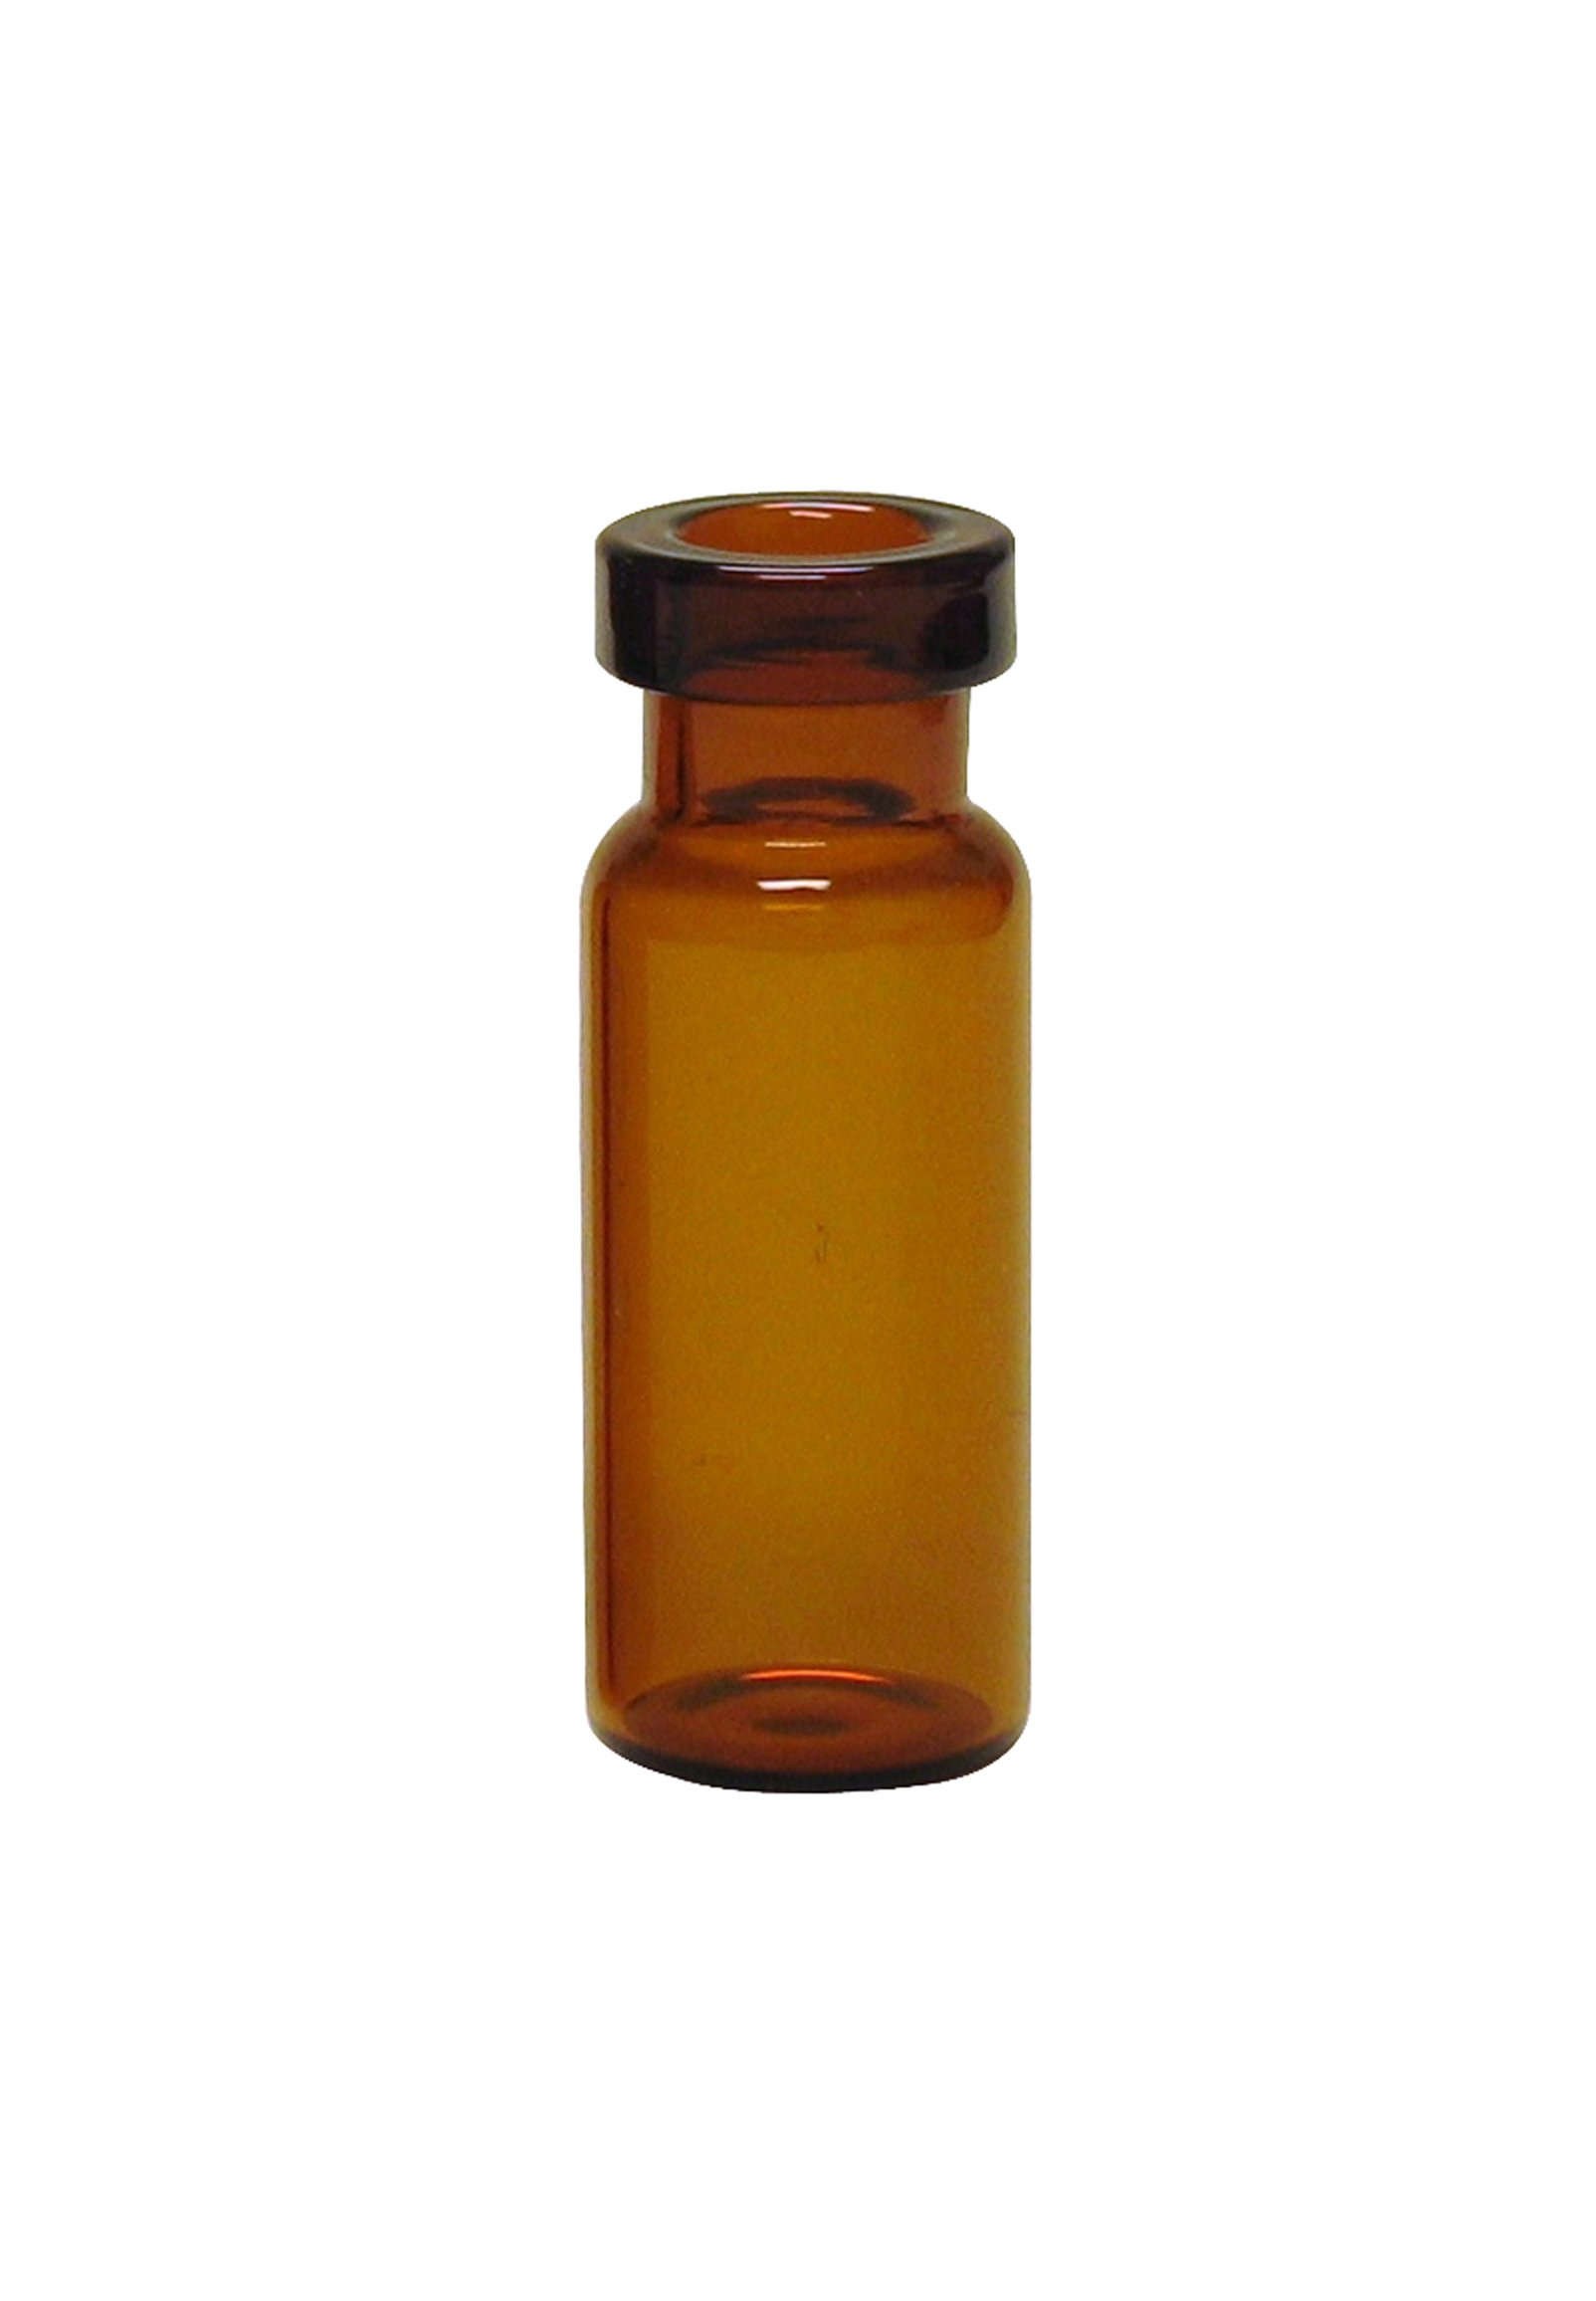 National Scientific Amber Glass I-D Target LoVial, Flat Base, 2ml, 11mm Crimp Top Vial, 12x32mm (Case of 2000)